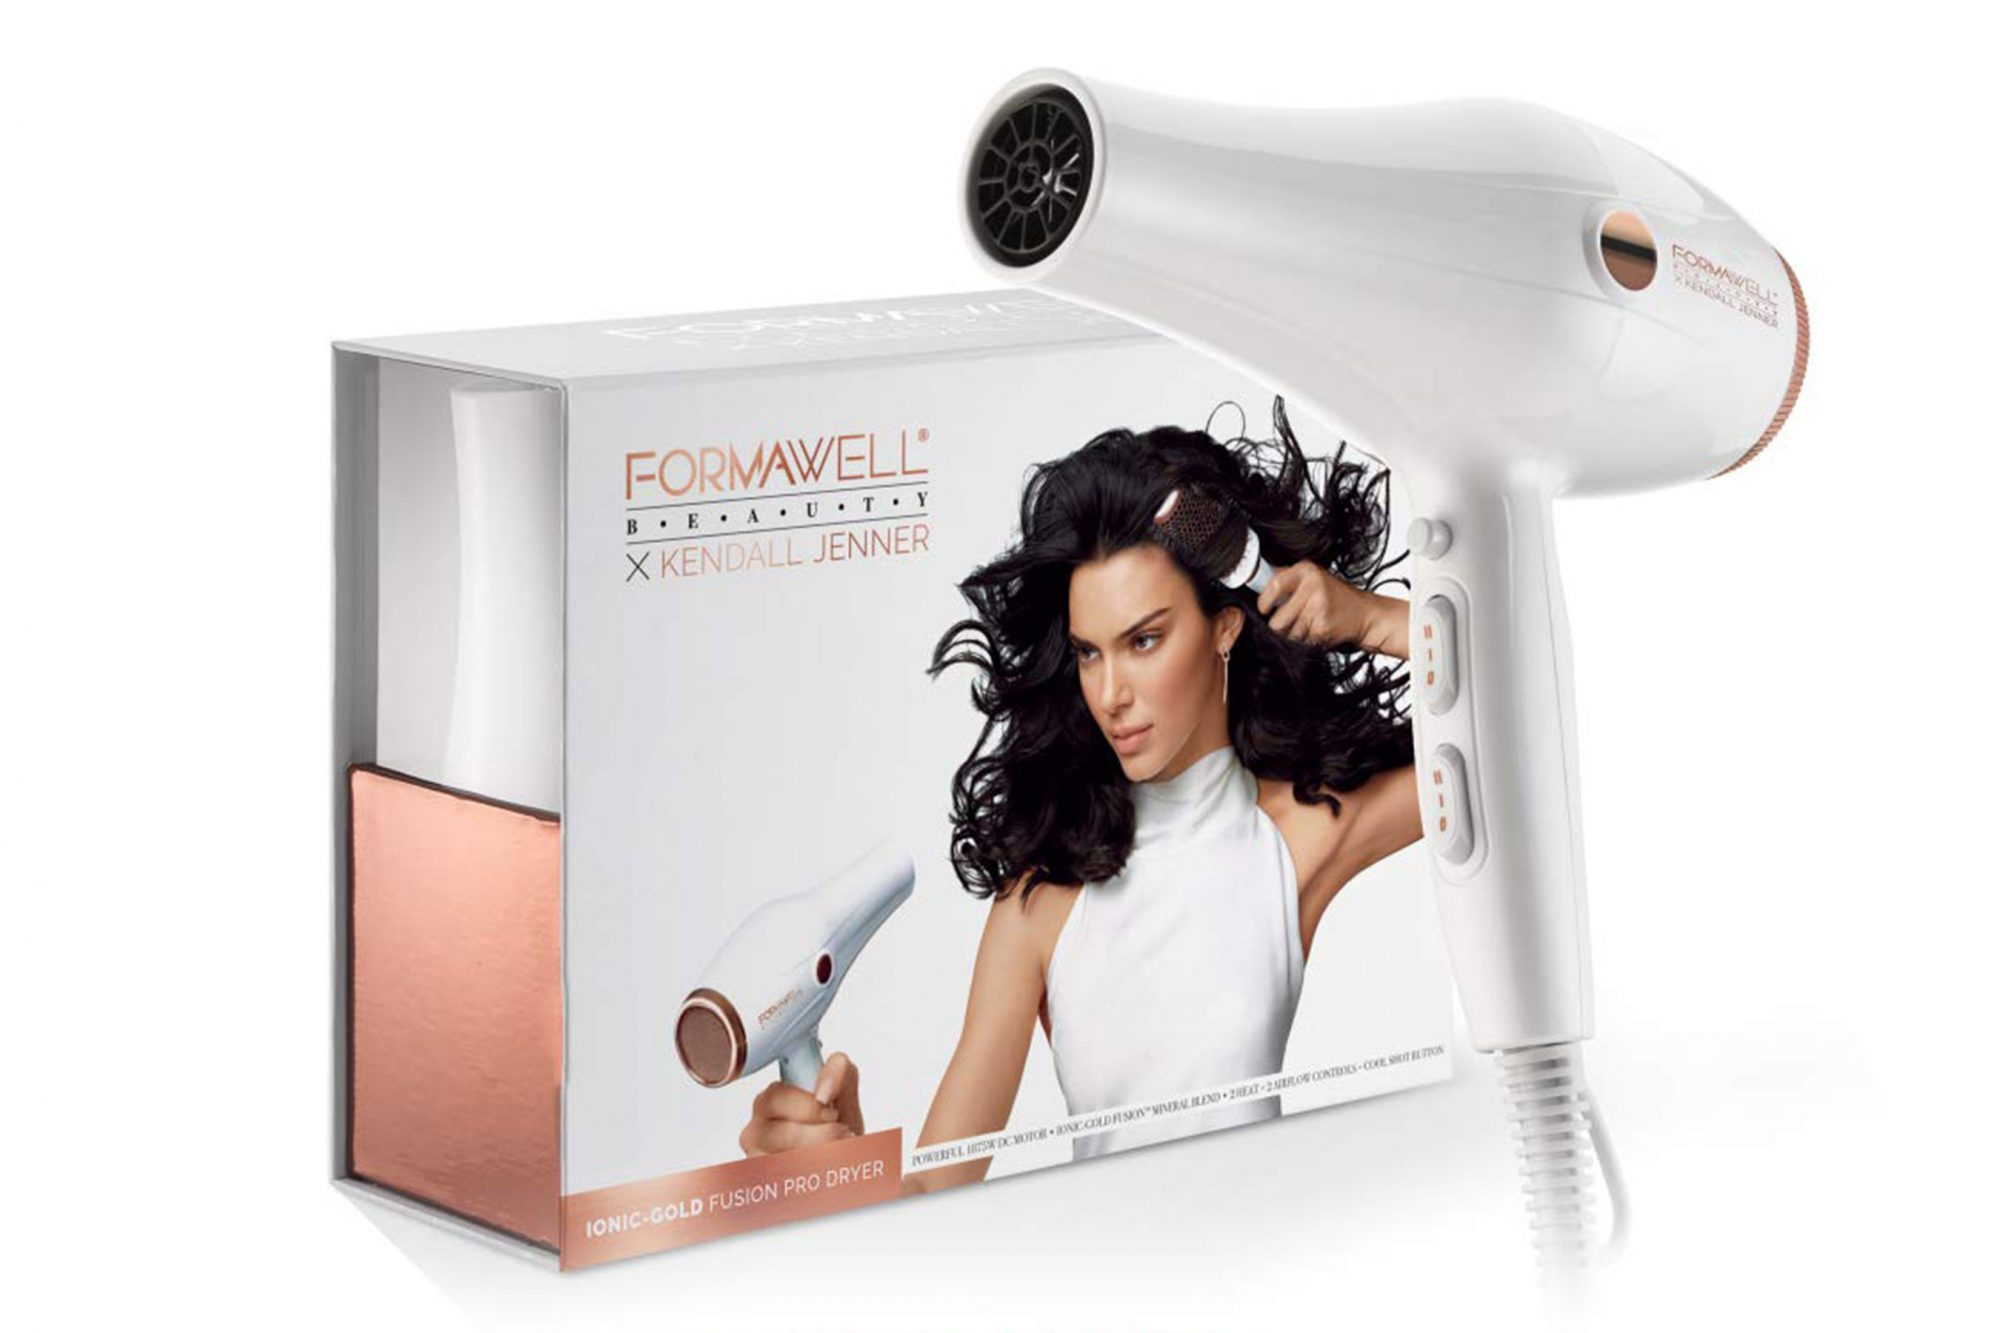 Formawell Beauty x Kendall Jenner Ionic Blow Dryer on Amazon Prime Day